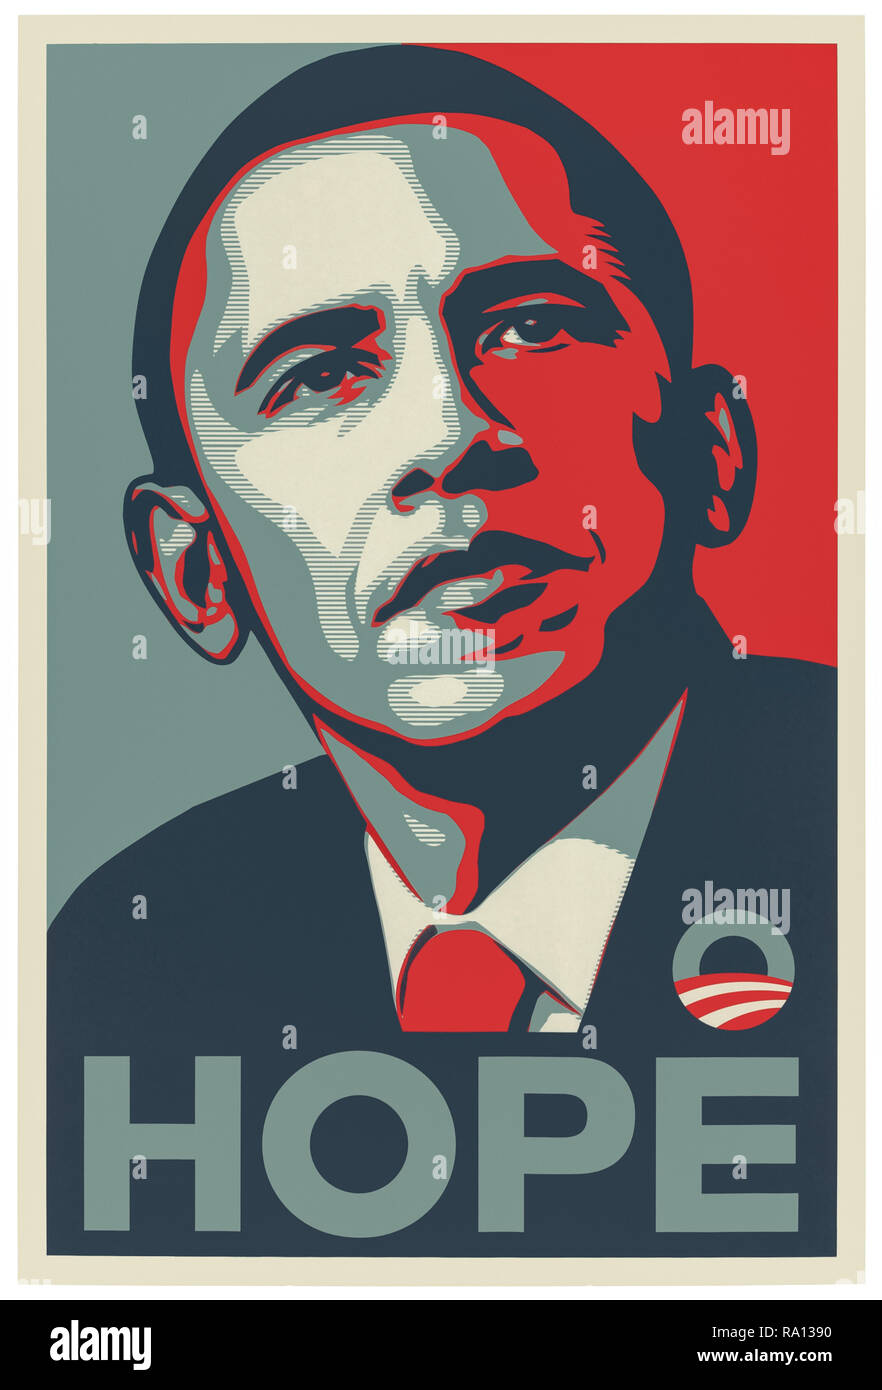 HOPE 2008 Barack Obama Presidential campaign poster designed by Shepard Fairey. The iconic poster uses the Gotham sans-serif typeface with a stencil portrait in red, beige and blue. - Stock Image